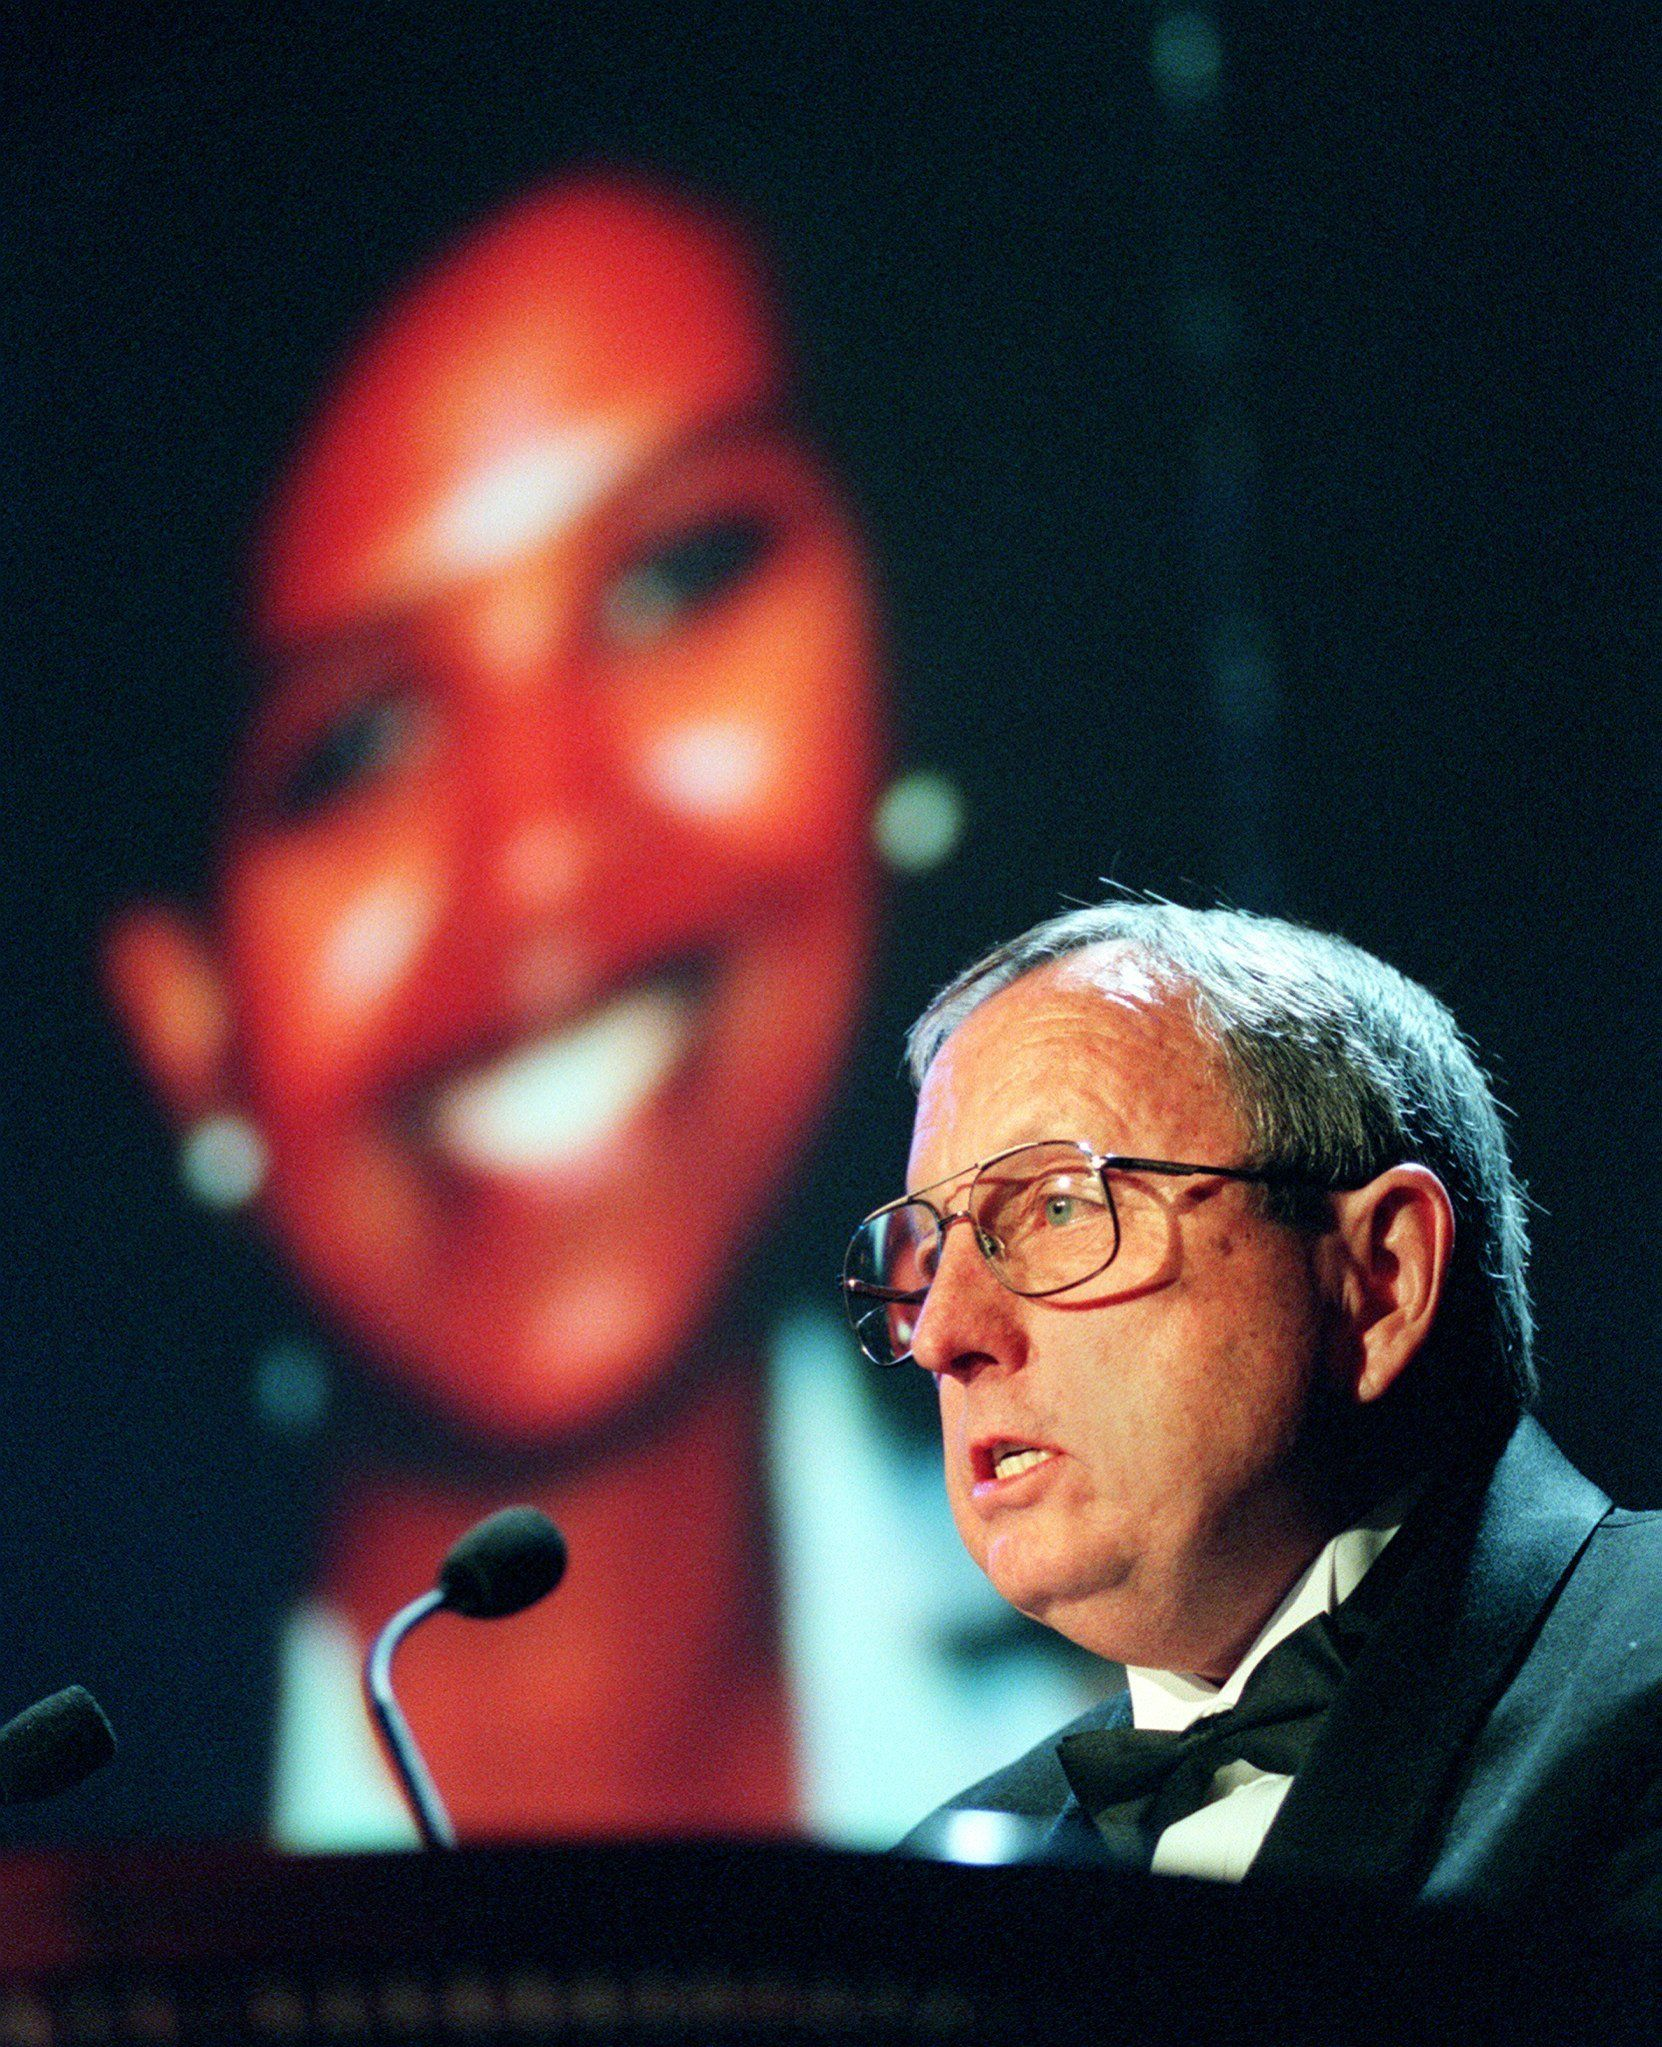 NEW YORK, UNITED STATES:  Goodloe Sutton (R), a newspaper editor from Alabama, presents the International Press Freedom Award in recognition of Agence France-Presse Eritrean correspondent Ruth Simon (L, photo on screen) 24 November during a ceremony sponsored by the 'Committee To Protect Journalists' in New York. Simon, unable to attend, has been held in detention since 25 April 1997 for reporting that Eritrean troops were fighting alongside rebel forces in neighboring Sudan. Gremah Boucar of Niger, Gustavo Gorriti, a Peruvian currently living in Panama, Goenawan Mohamad of Indonesia and Pavel Sheremet of Belarus were also recipients.  AFP PHOTO Stan HONDA (Photo credit should read STAN HONDA/AFP/Getty Images)